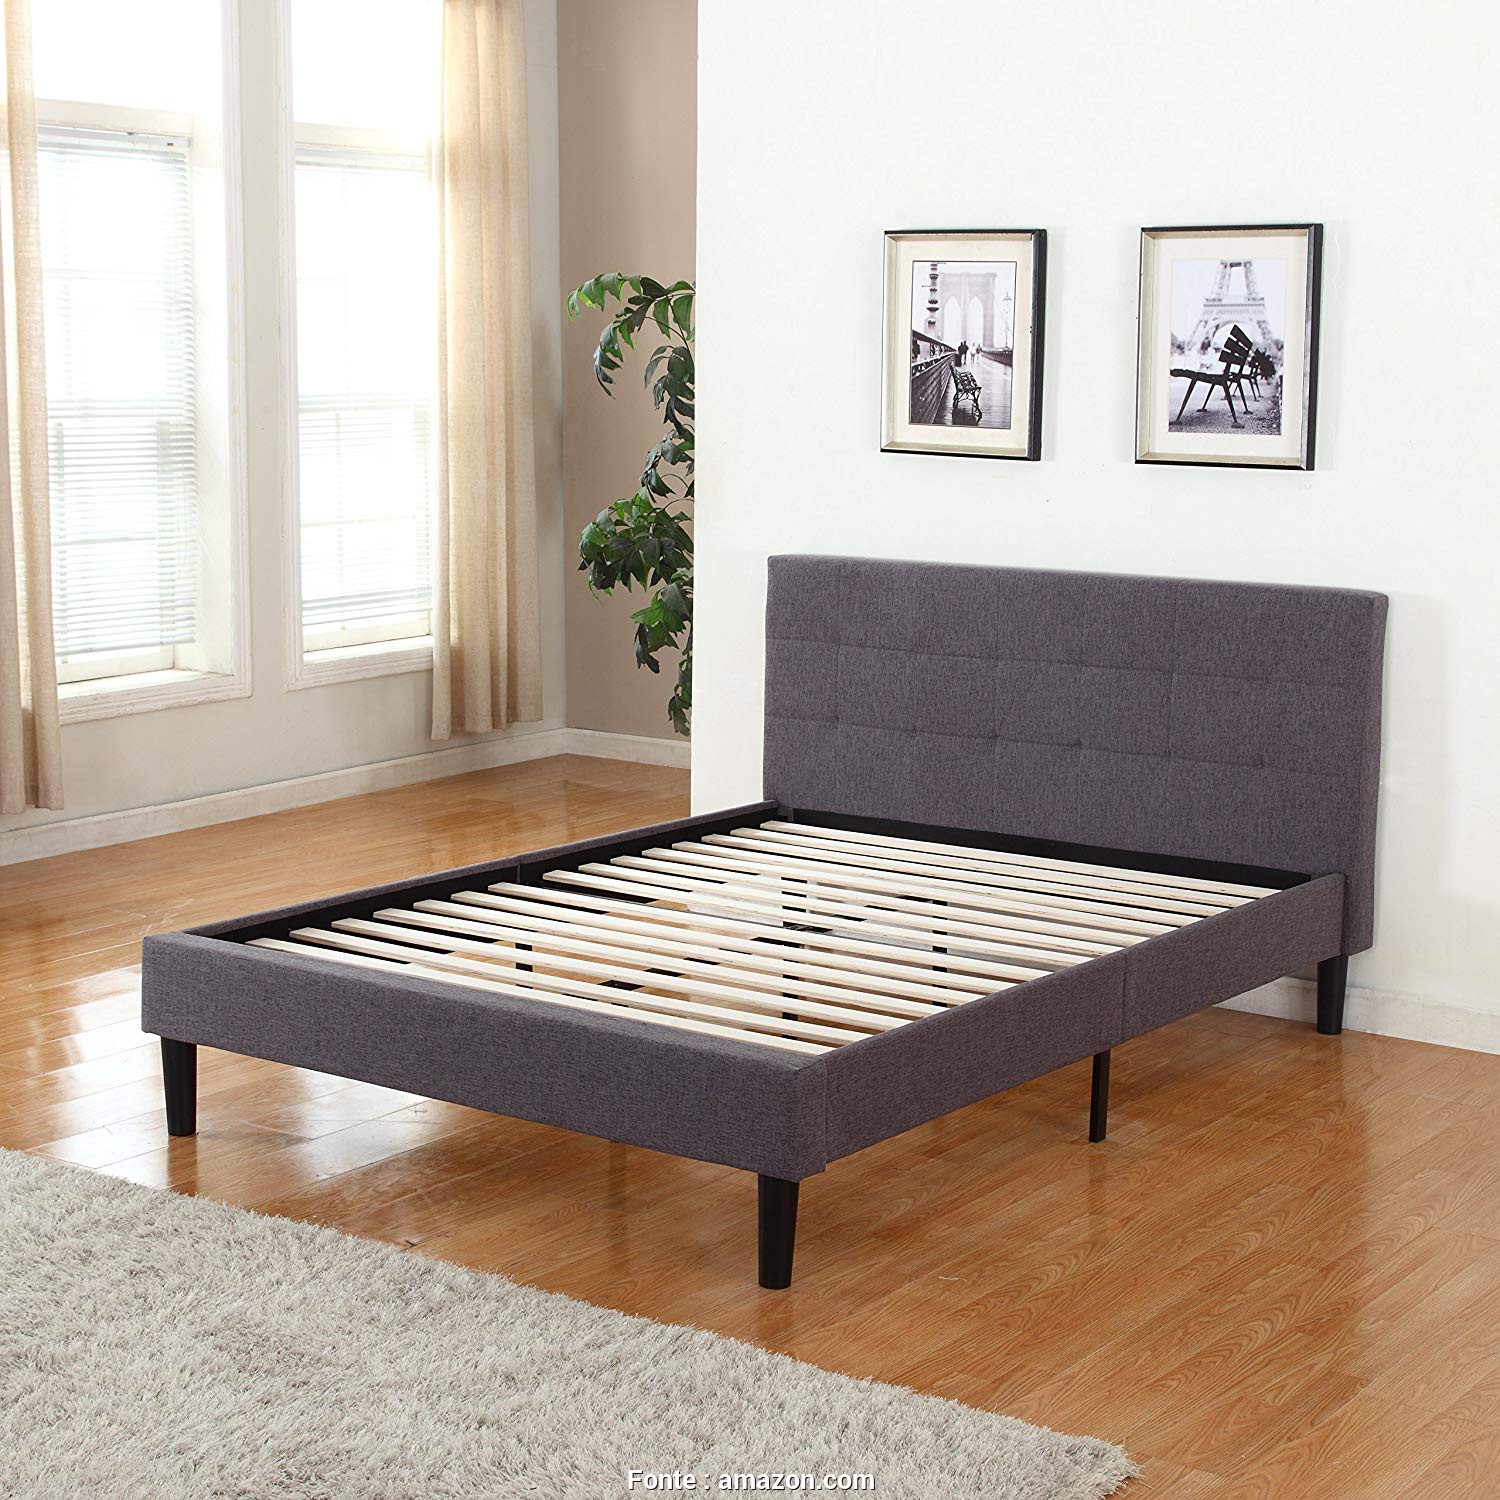 Amazon Copricuscini Divano Genius, Delizioso Amazon.Com: Divano Roma Furniture Deluxe Tufted Grey Platform, Frame With Wooden Slats (Full): Kitchen & Dining